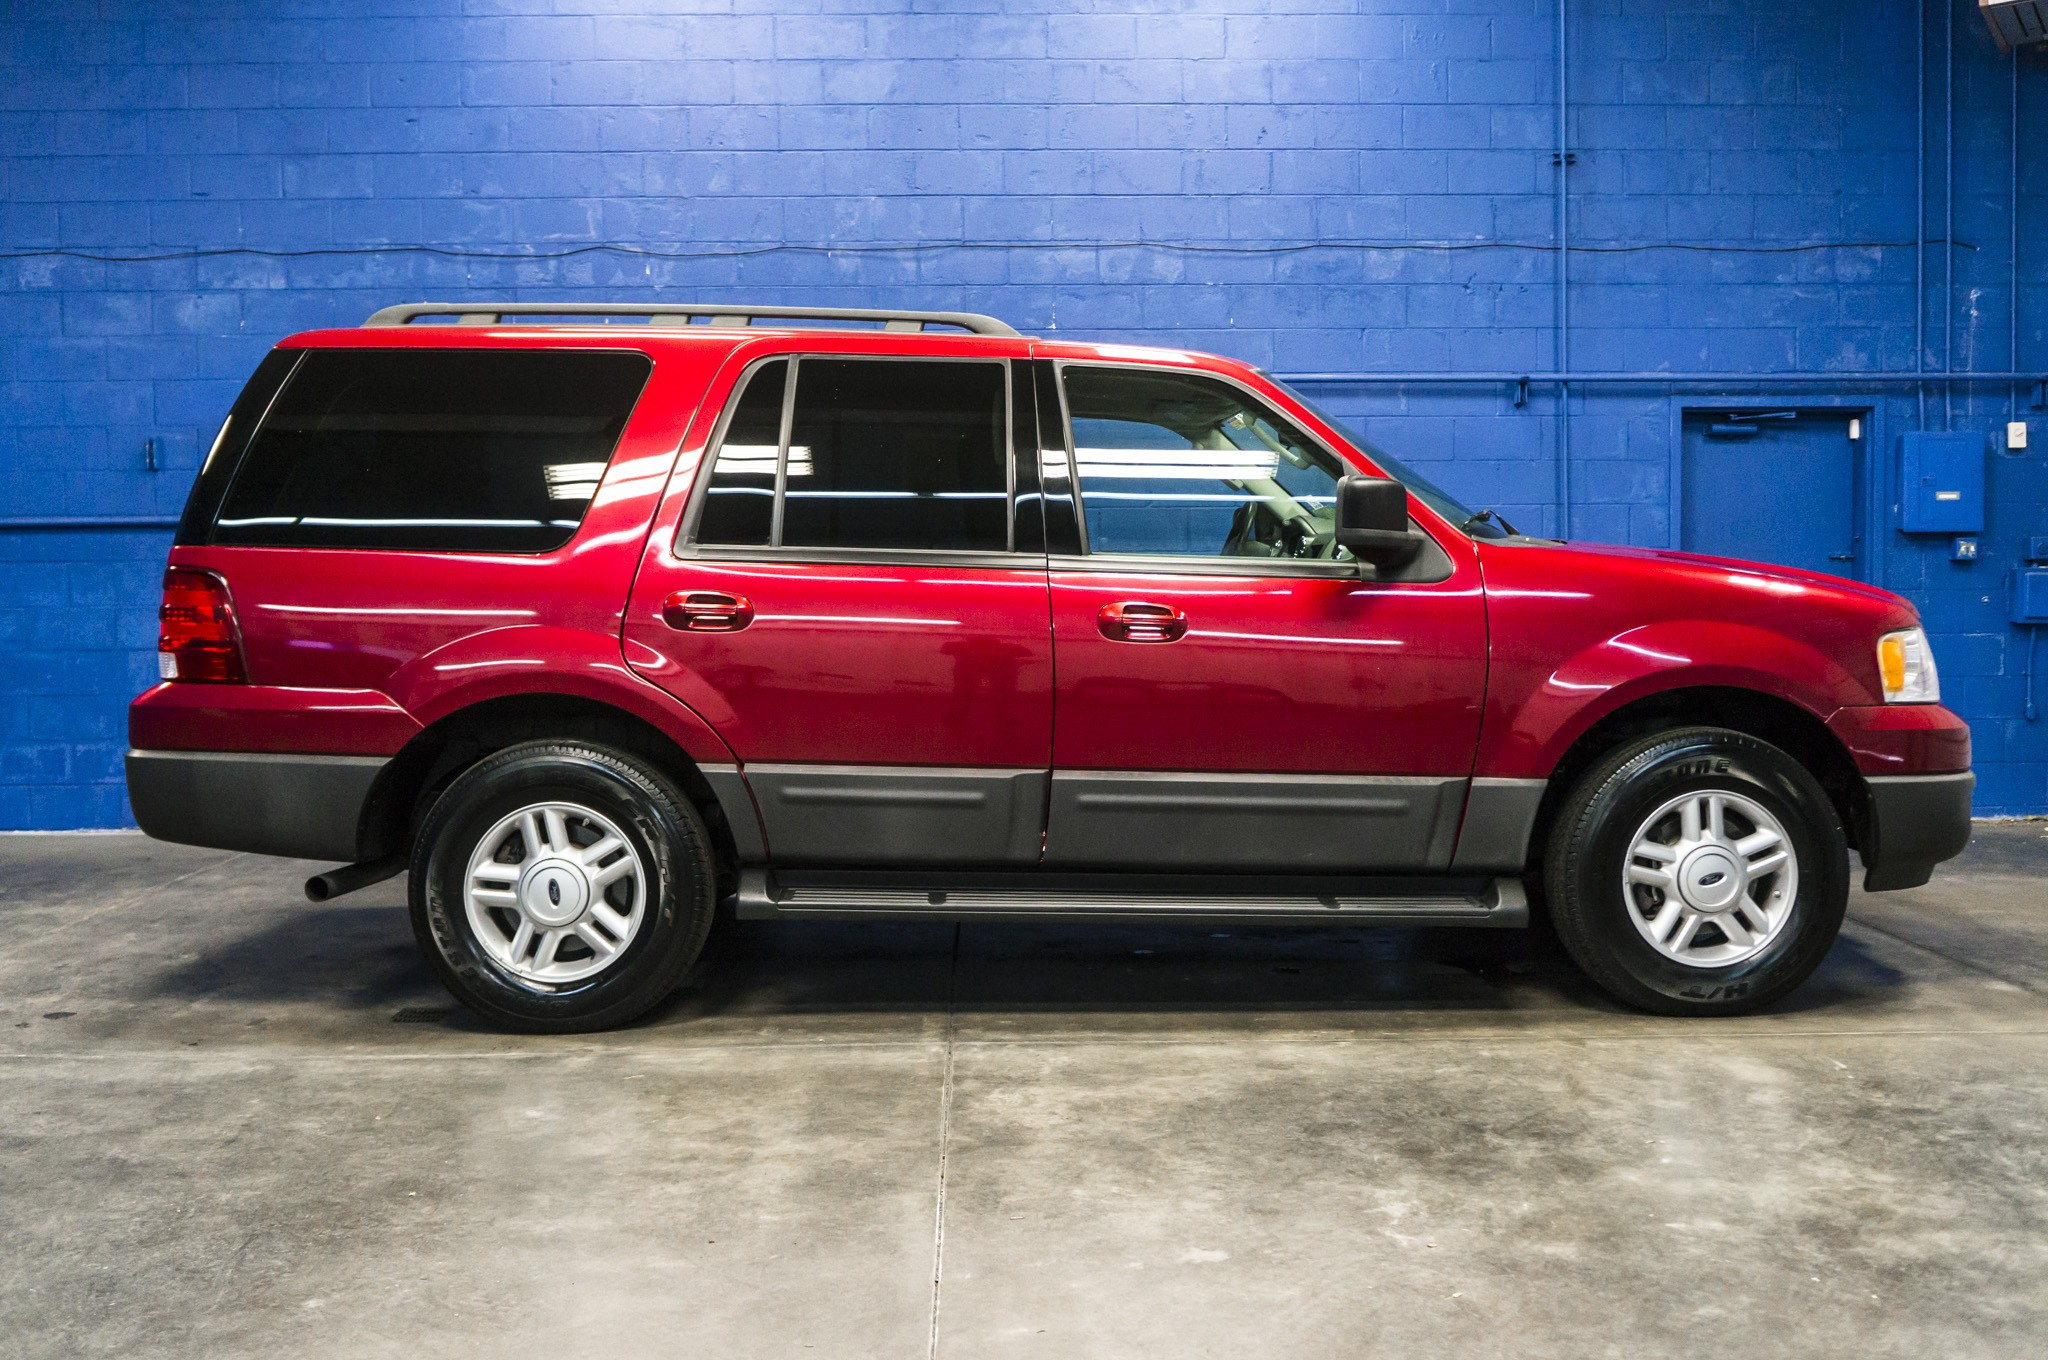 Used Ford Expedition XLT X SUV For Sale - 2006 expedition